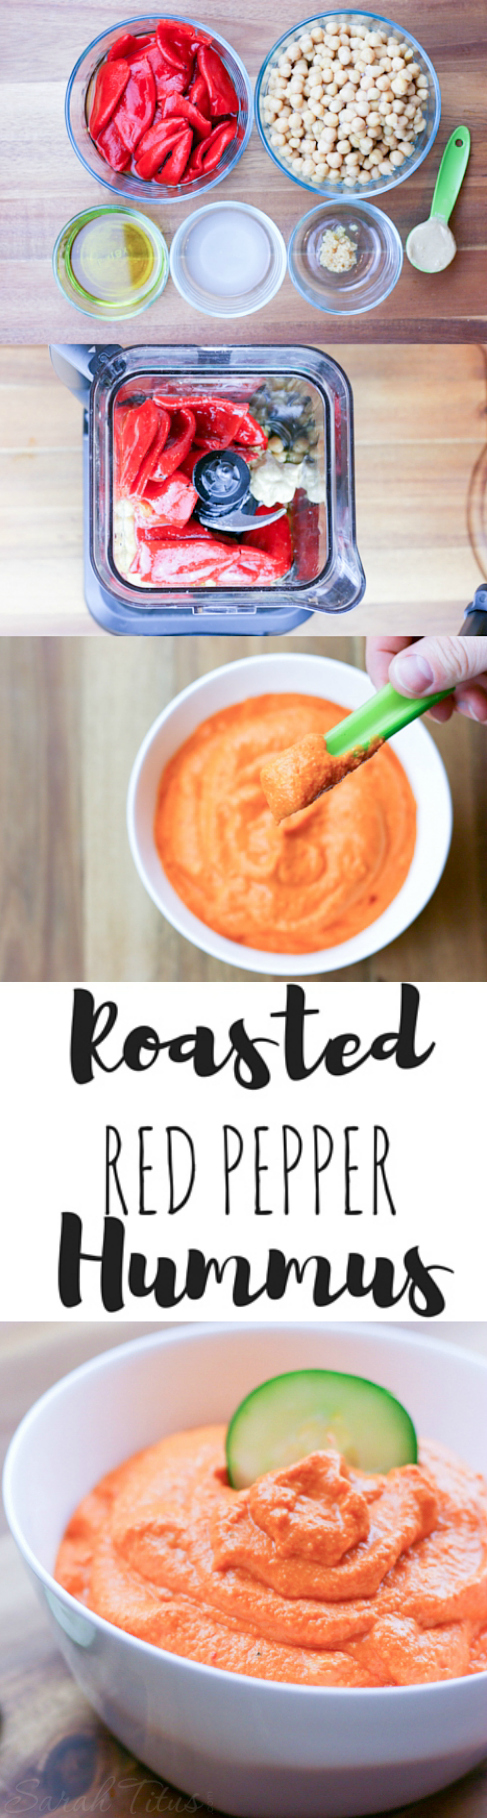 Hummus is a great snack and the flavors you can add are almost endless, but I particularly like the flavor of Roasted Red Pepper Hummus. Get the recipe here!